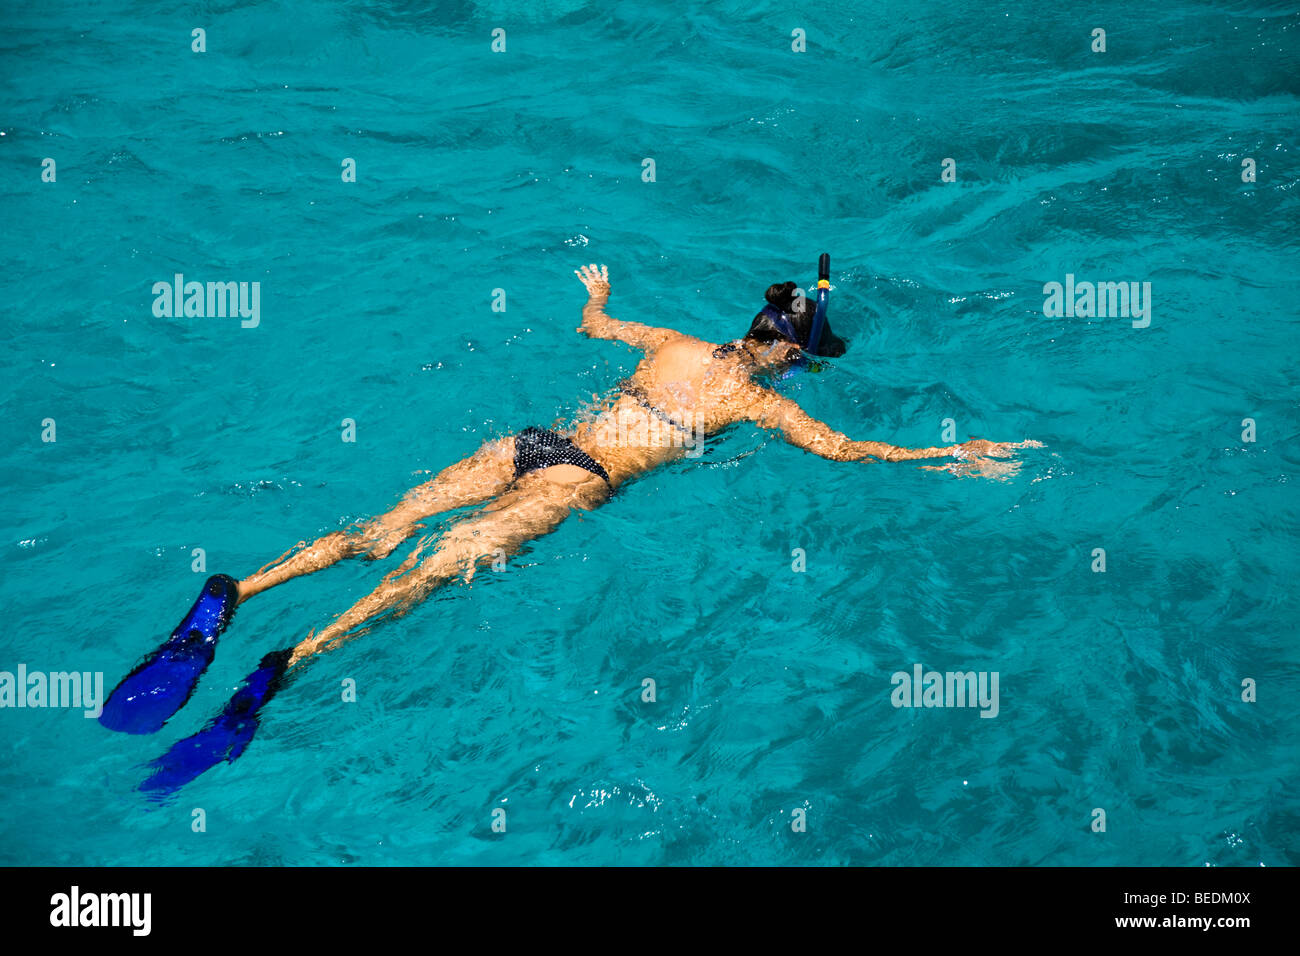 Woman snorkelling from Sharm el Sheikh, Red Sea, Egypt - Stock Image